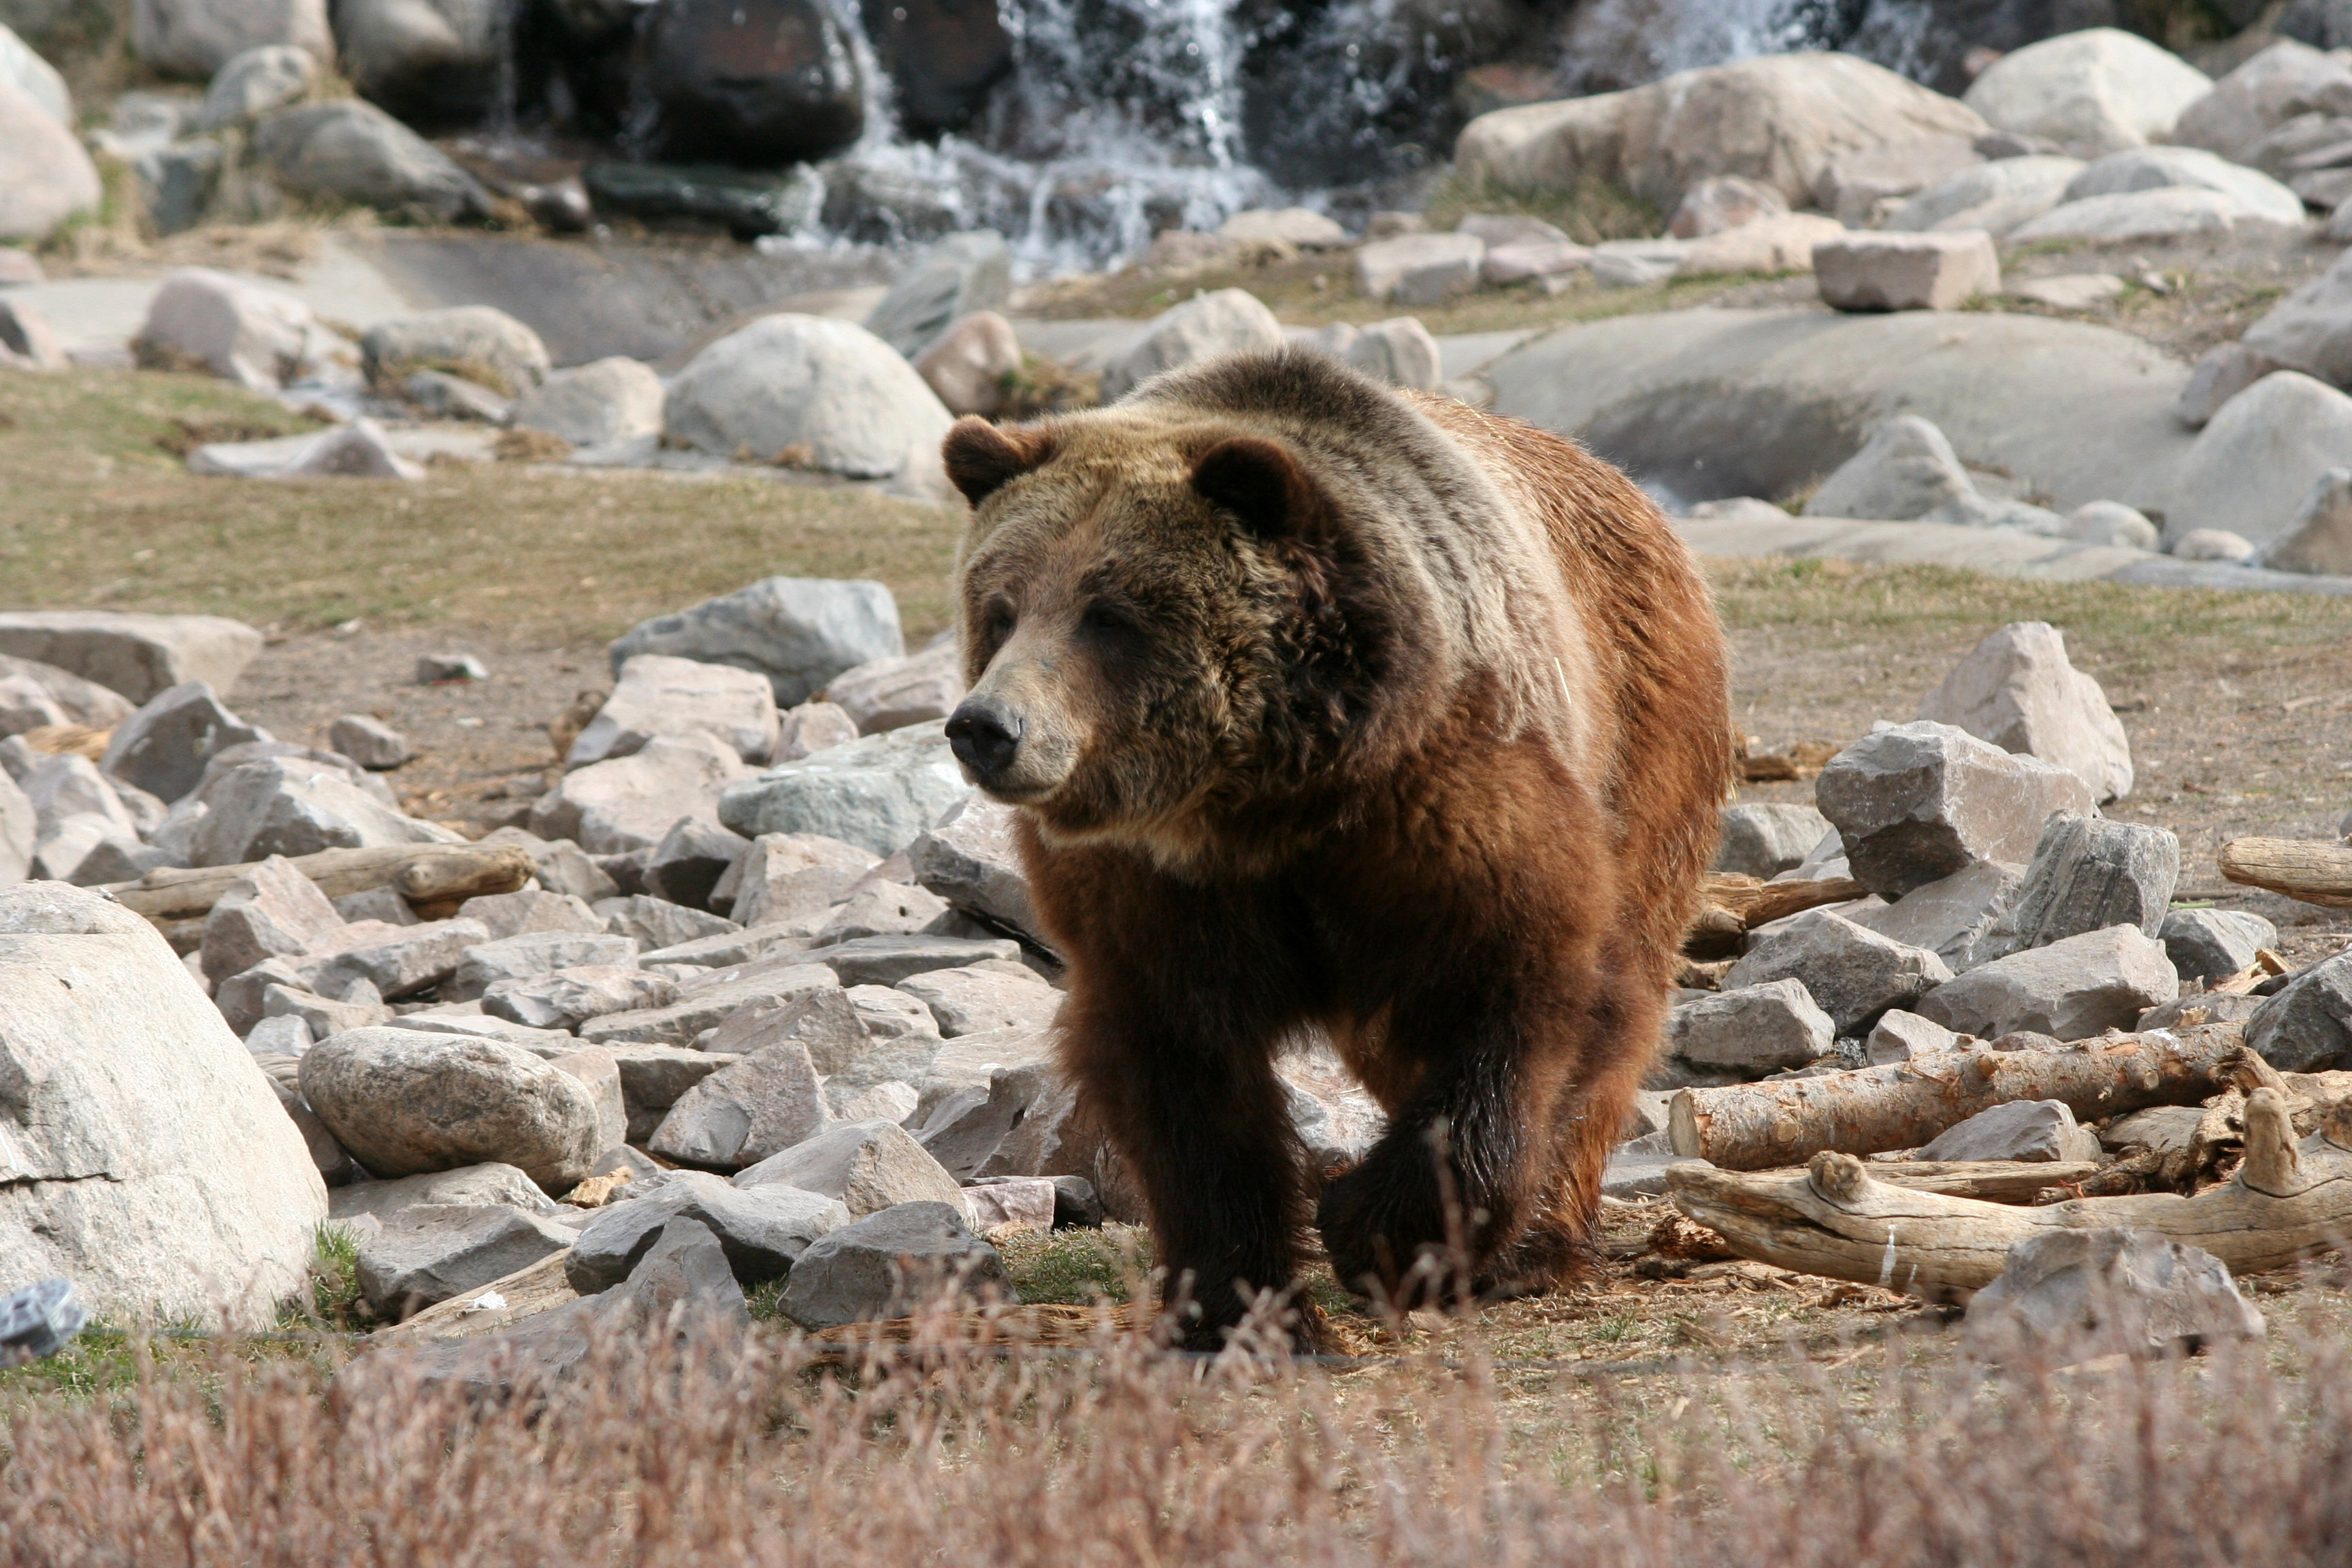 Brown Bear in Yellowstone National Park, Wyoming image - Free stock